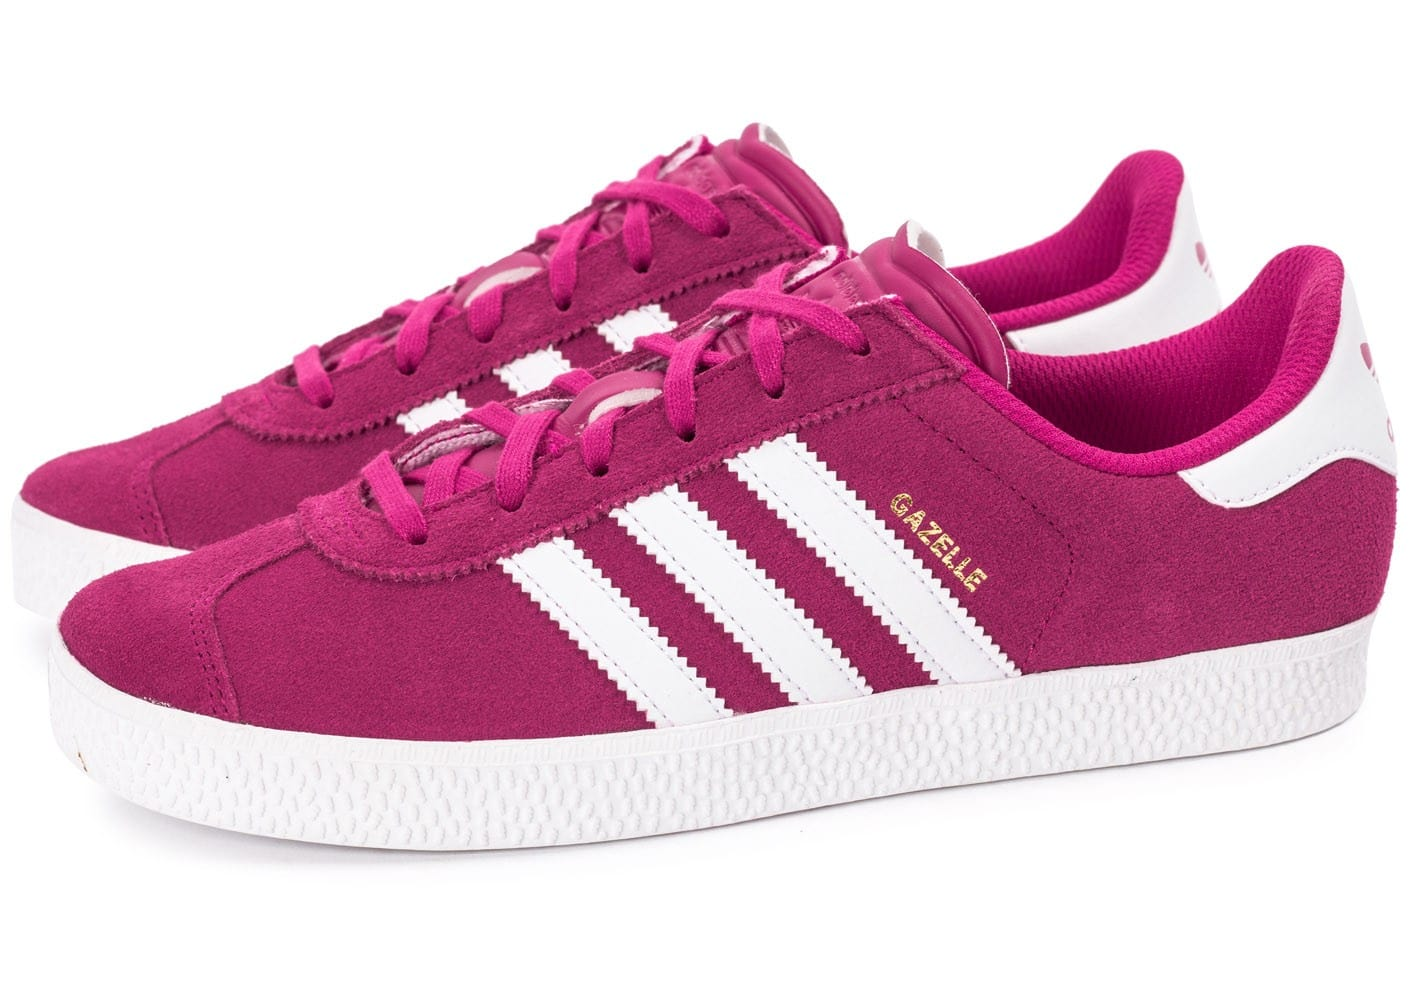 adidas gazelle 2 rose chaussures adidas chausport. Black Bedroom Furniture Sets. Home Design Ideas